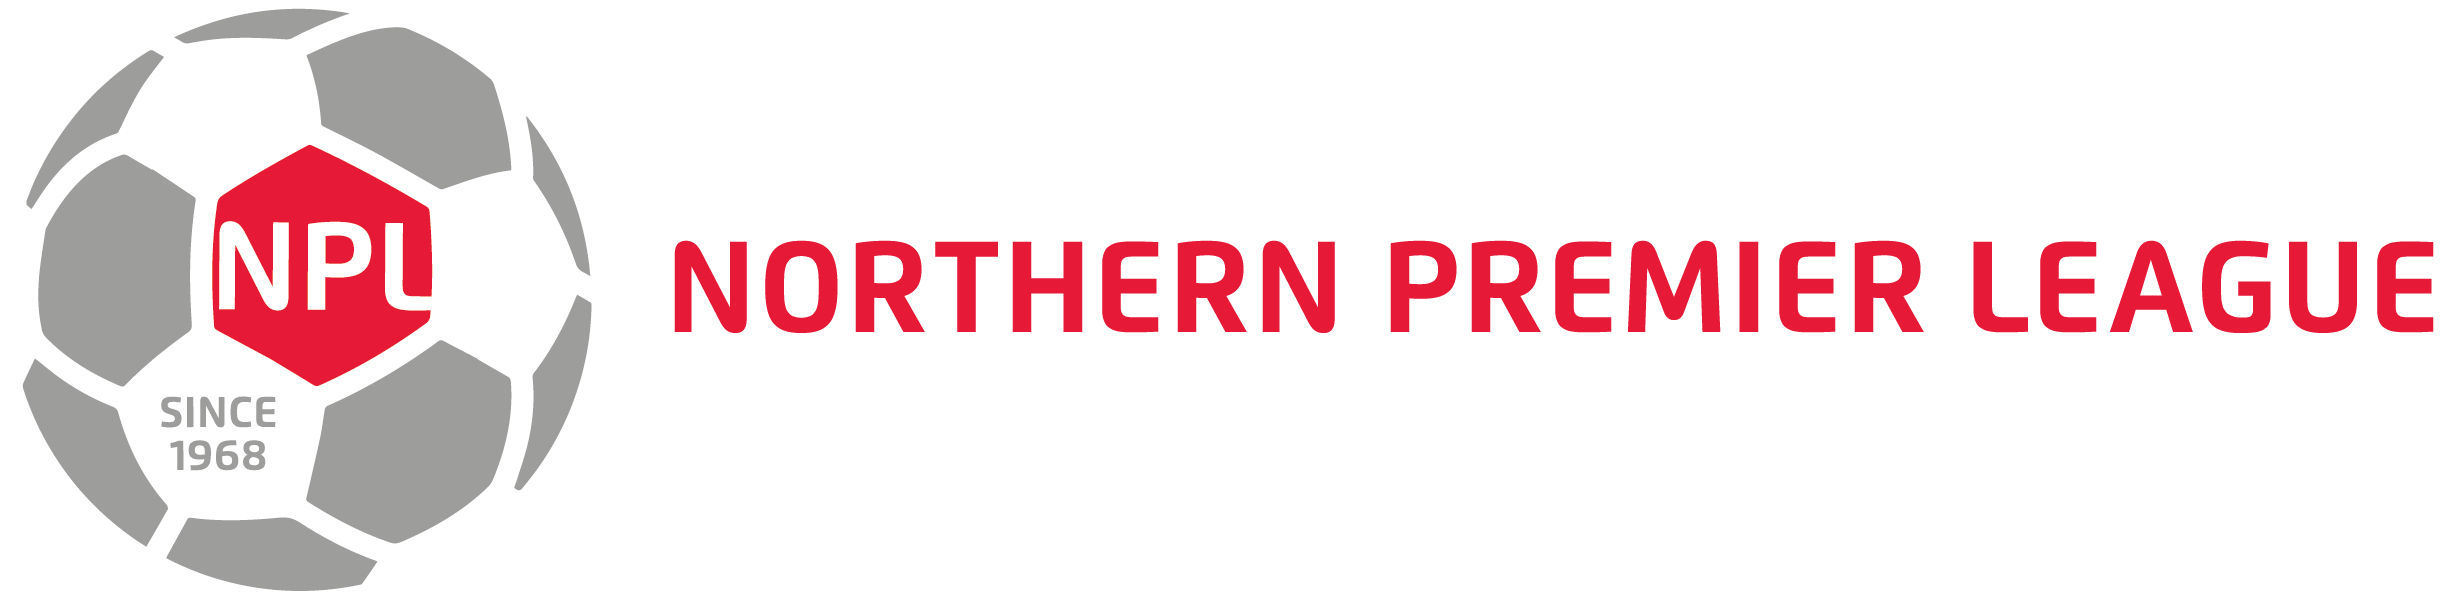 The Northern Premier League